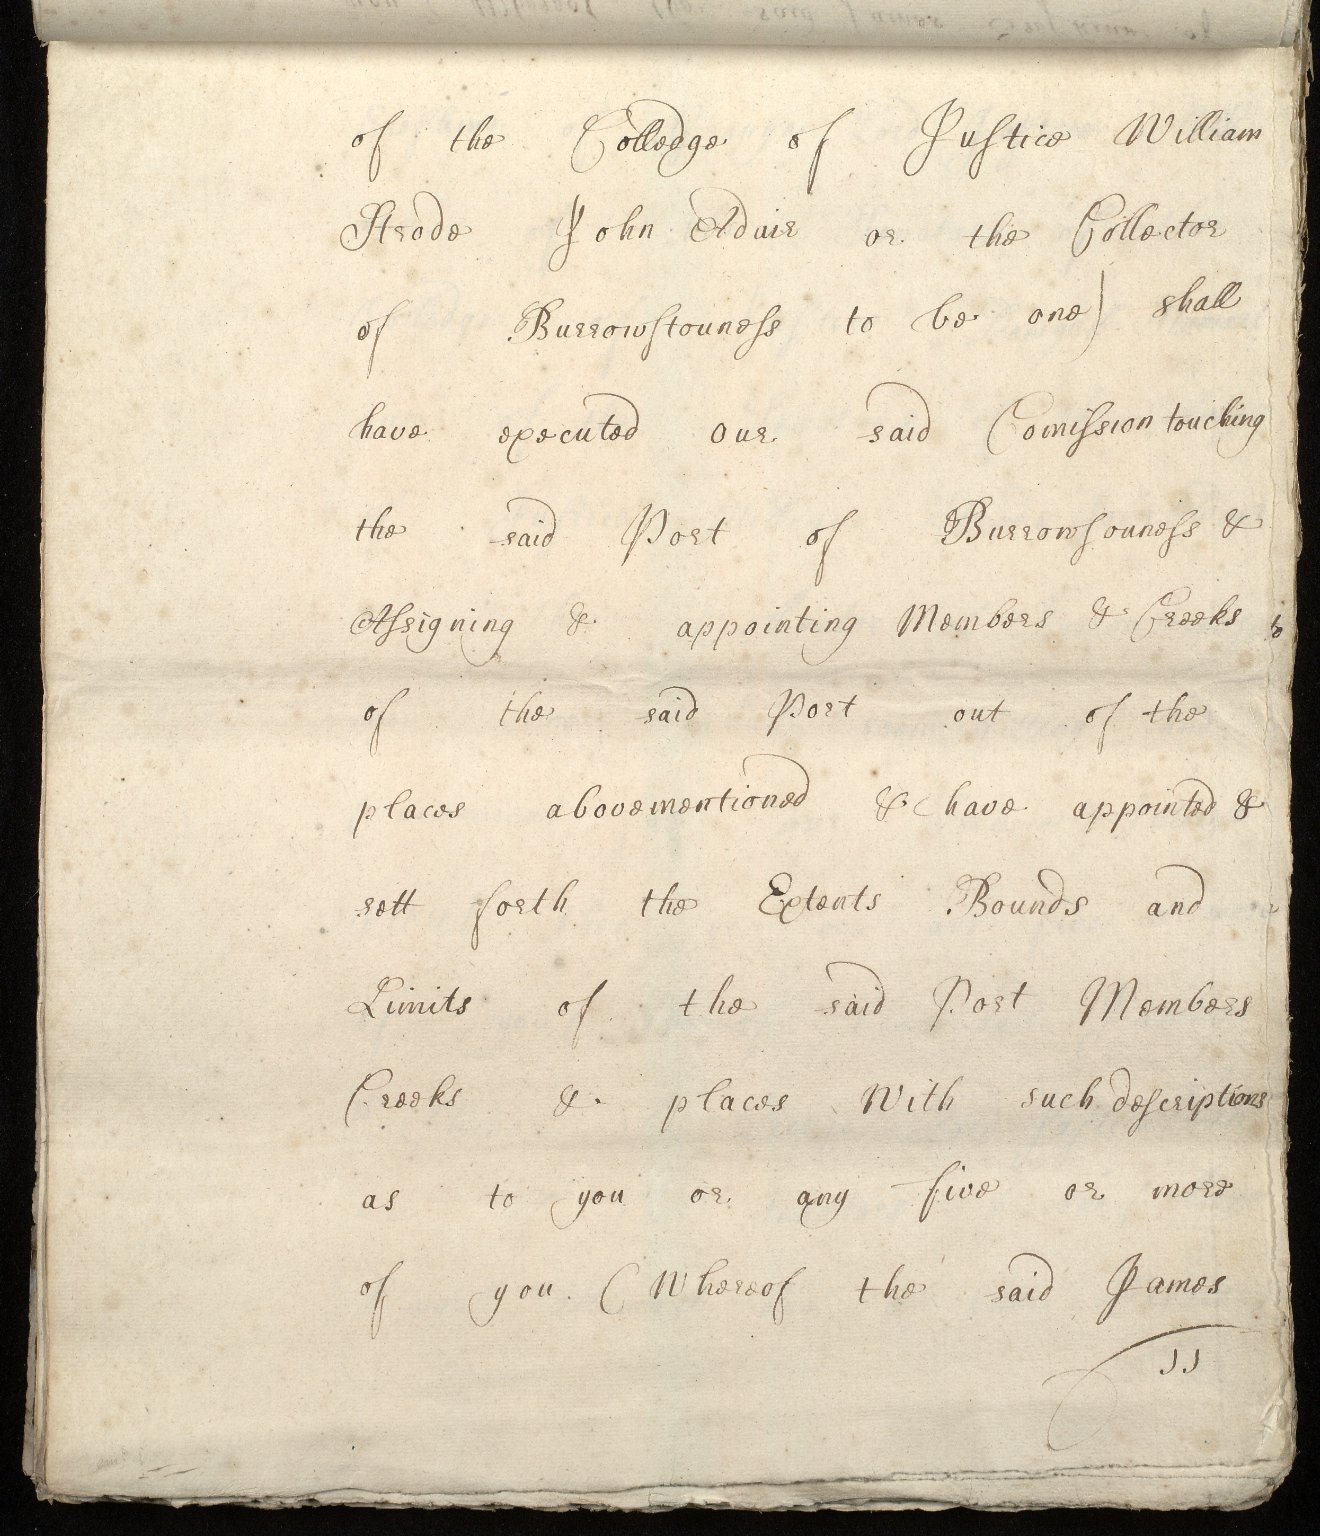 [Commission by Queen Anne to John Adair and others to appoint the town of Borrowstounness (Bo'ness) to be a port and to fix the bounds thereof] [11 of 39]